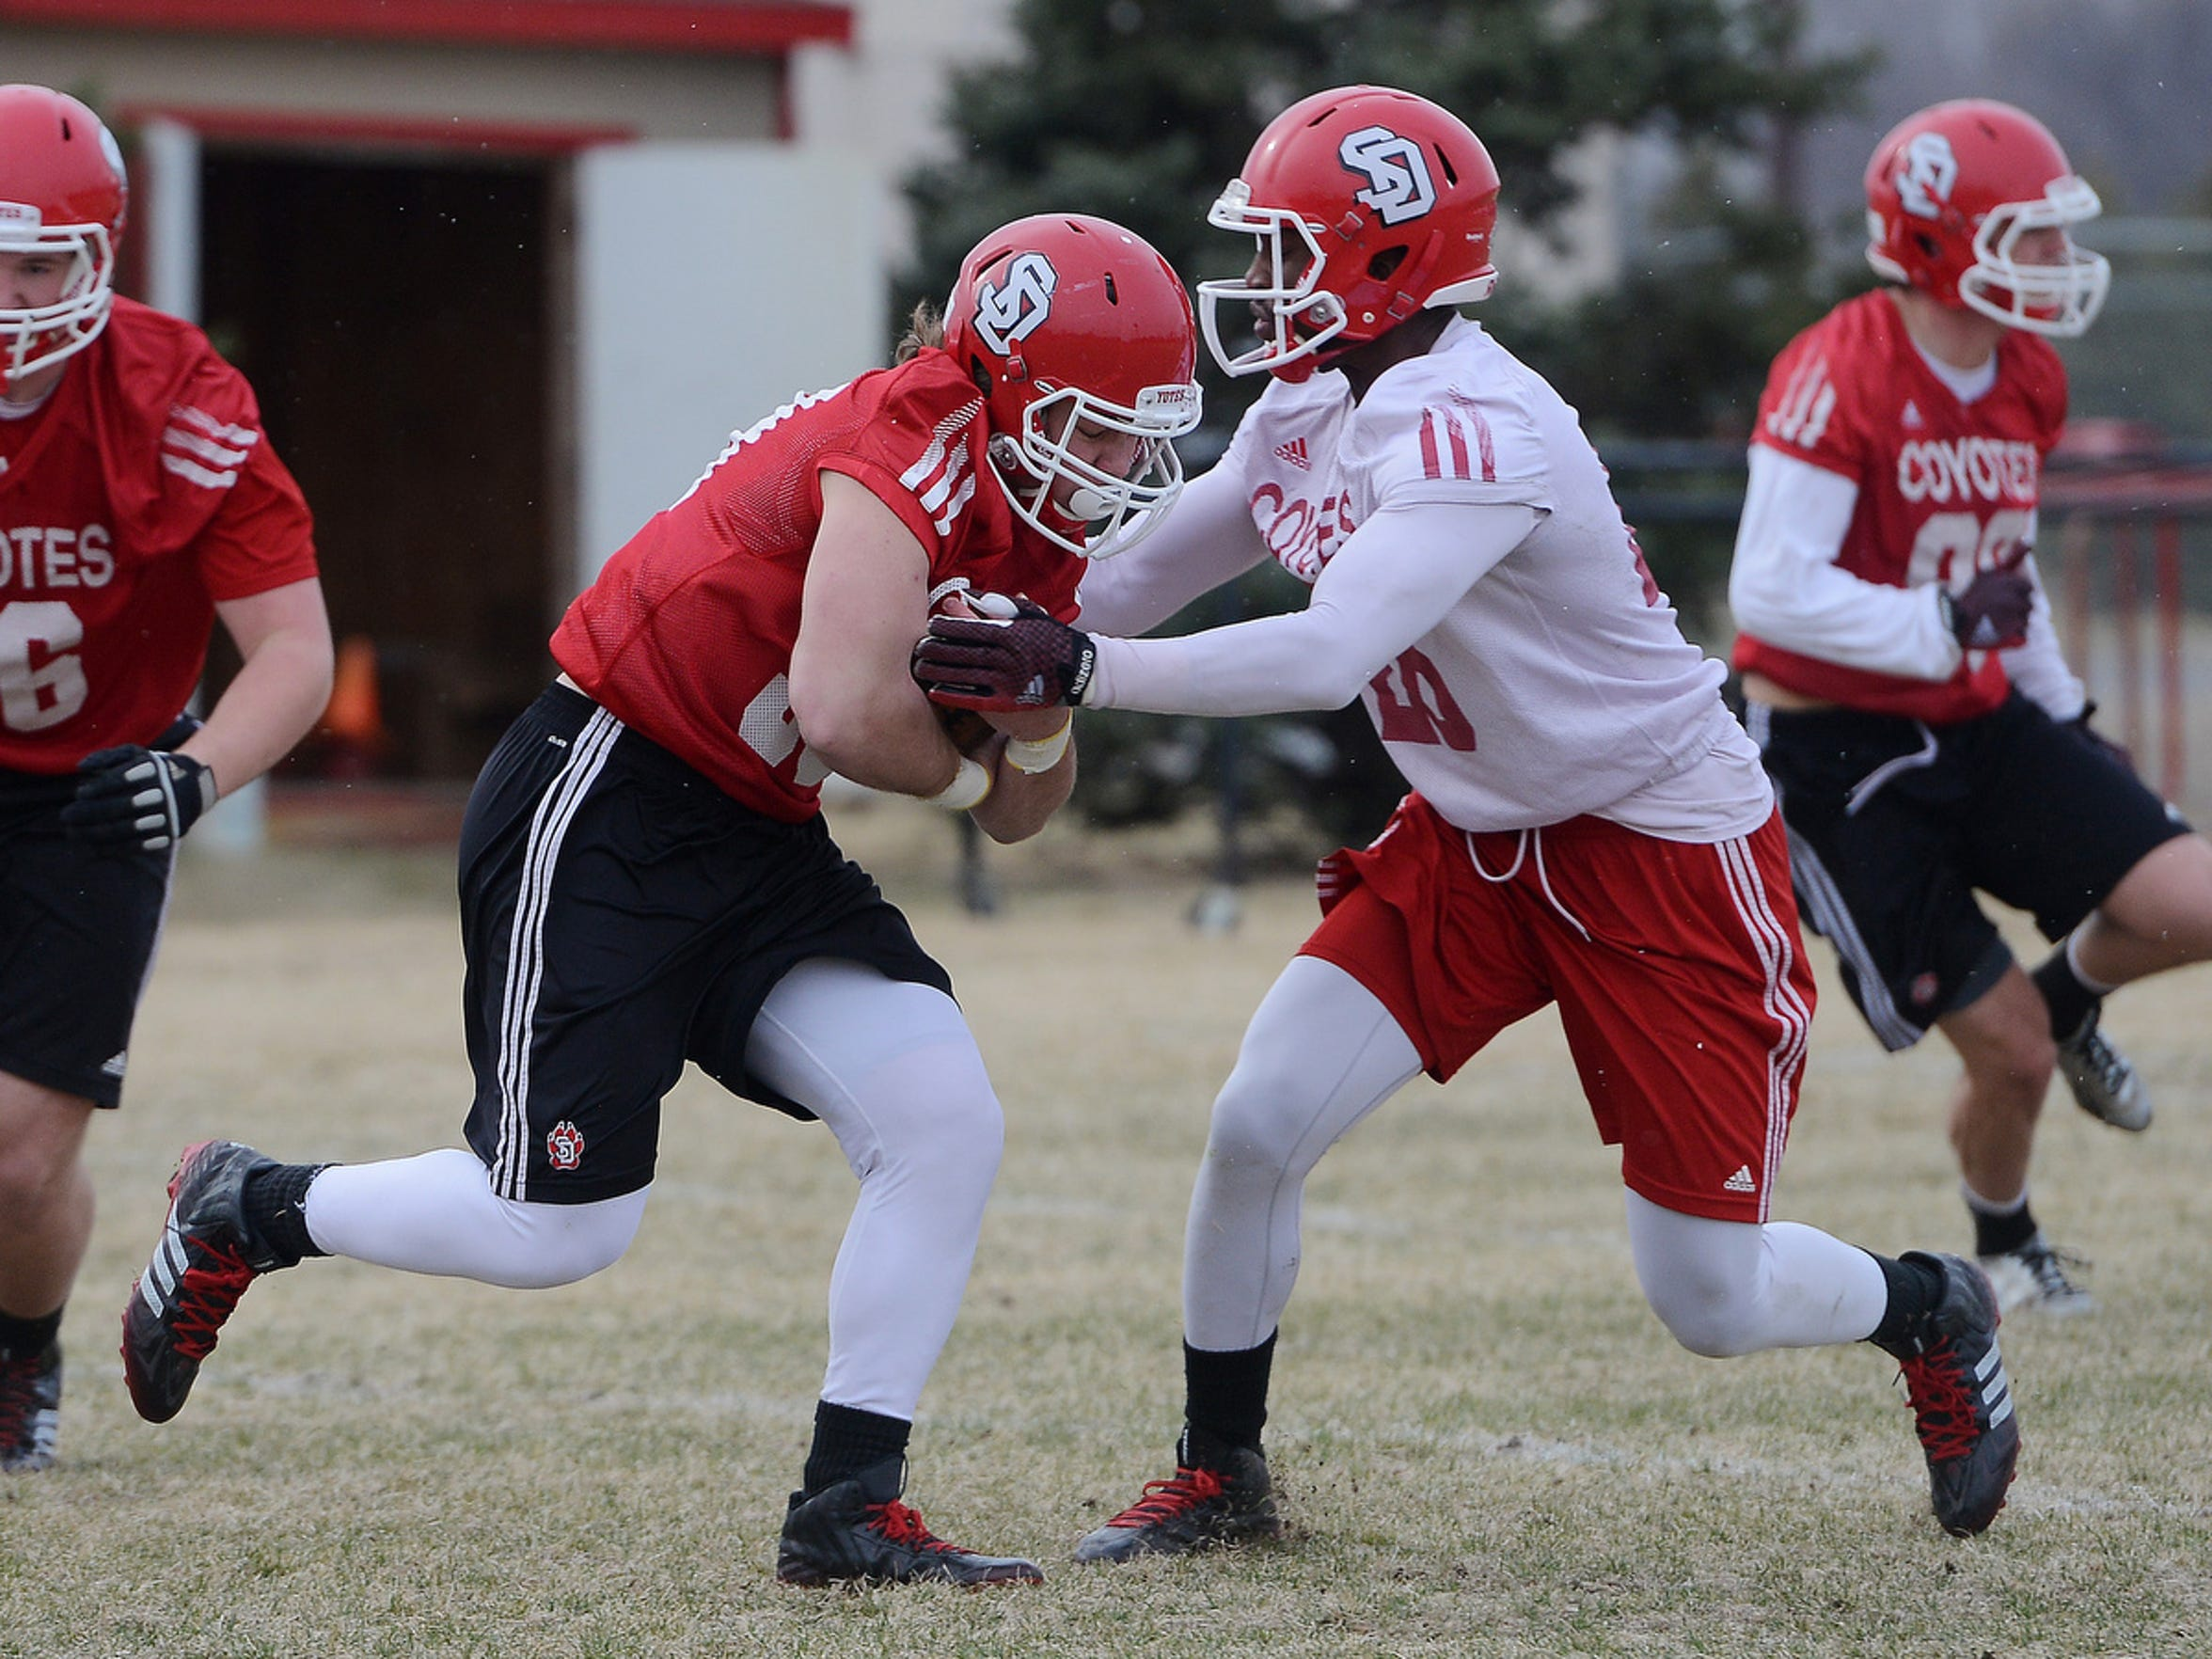 Shay Bratland tries to carry the ball past Chris Tyler